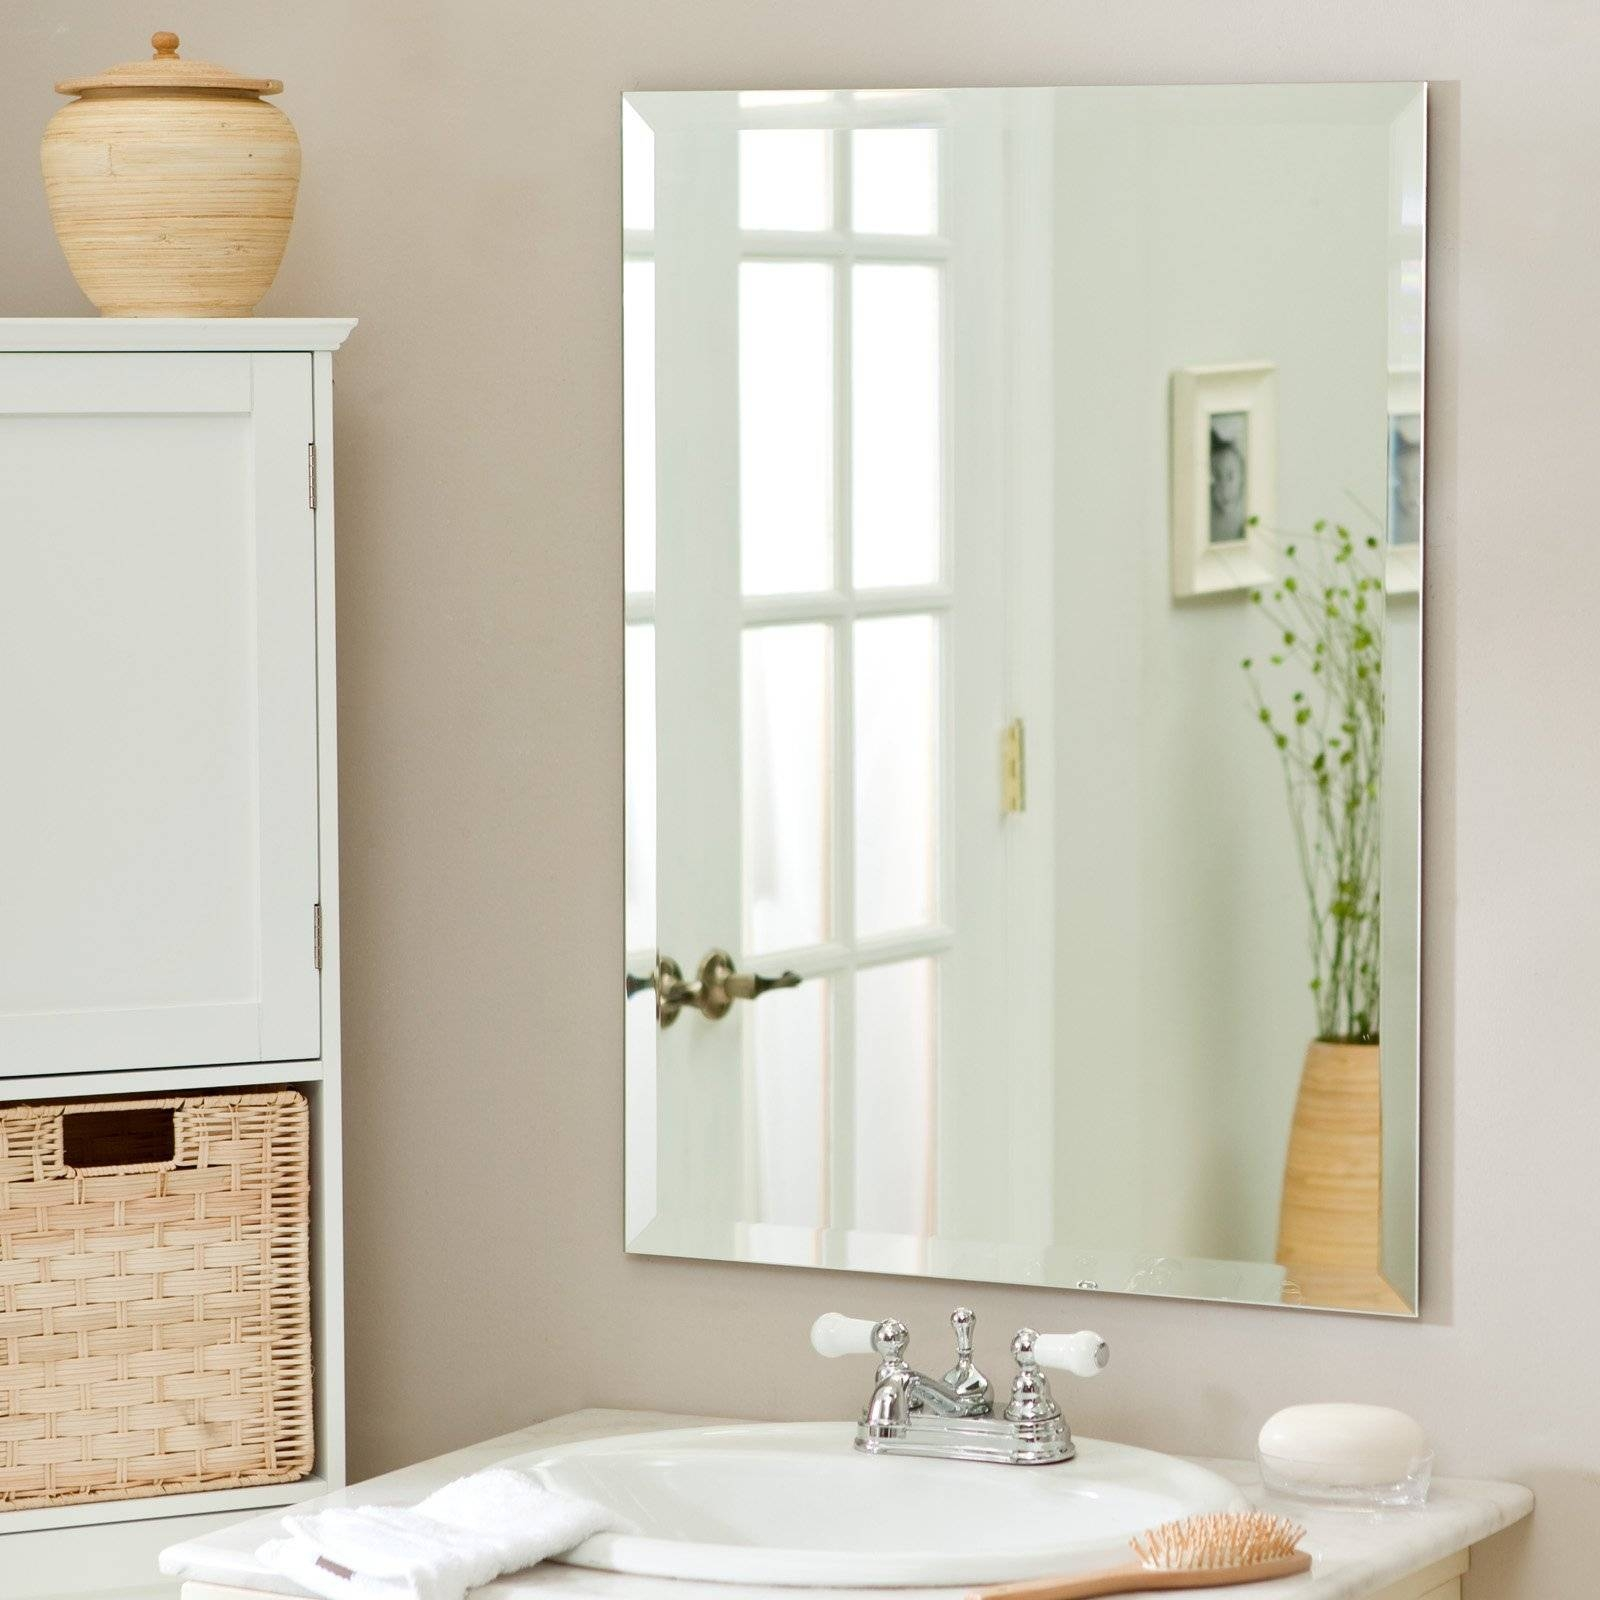 Uttermost Frameless Oval Beveled Vanity Mirror | Hayneedle intended for Large No Frame Mirrors (Image 23 of 25)